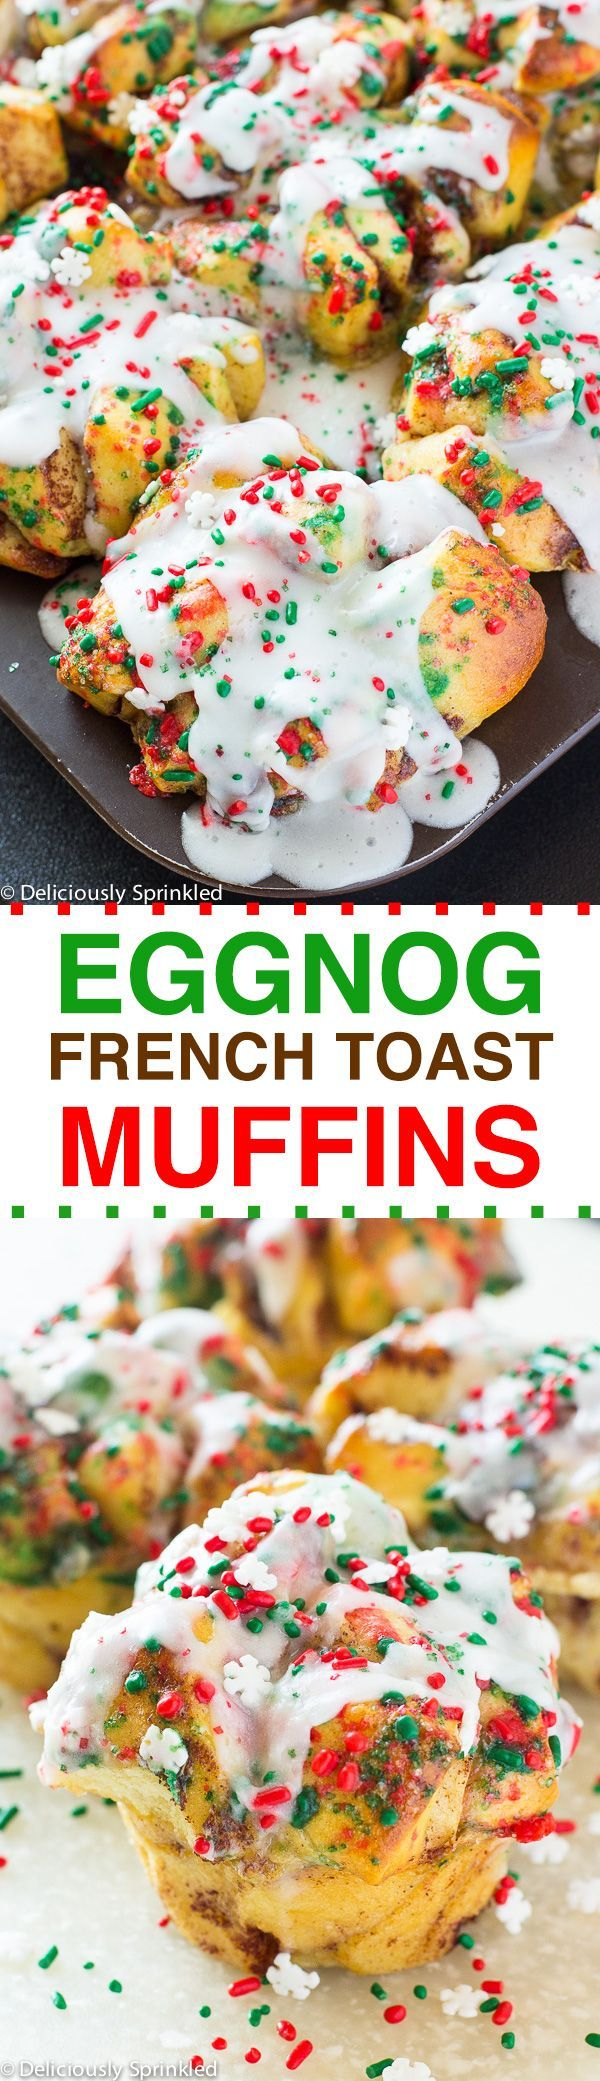 Easy Eggnog French Toast Muffins. The perfect holiday breakfast, brunch, or brinner recipe!